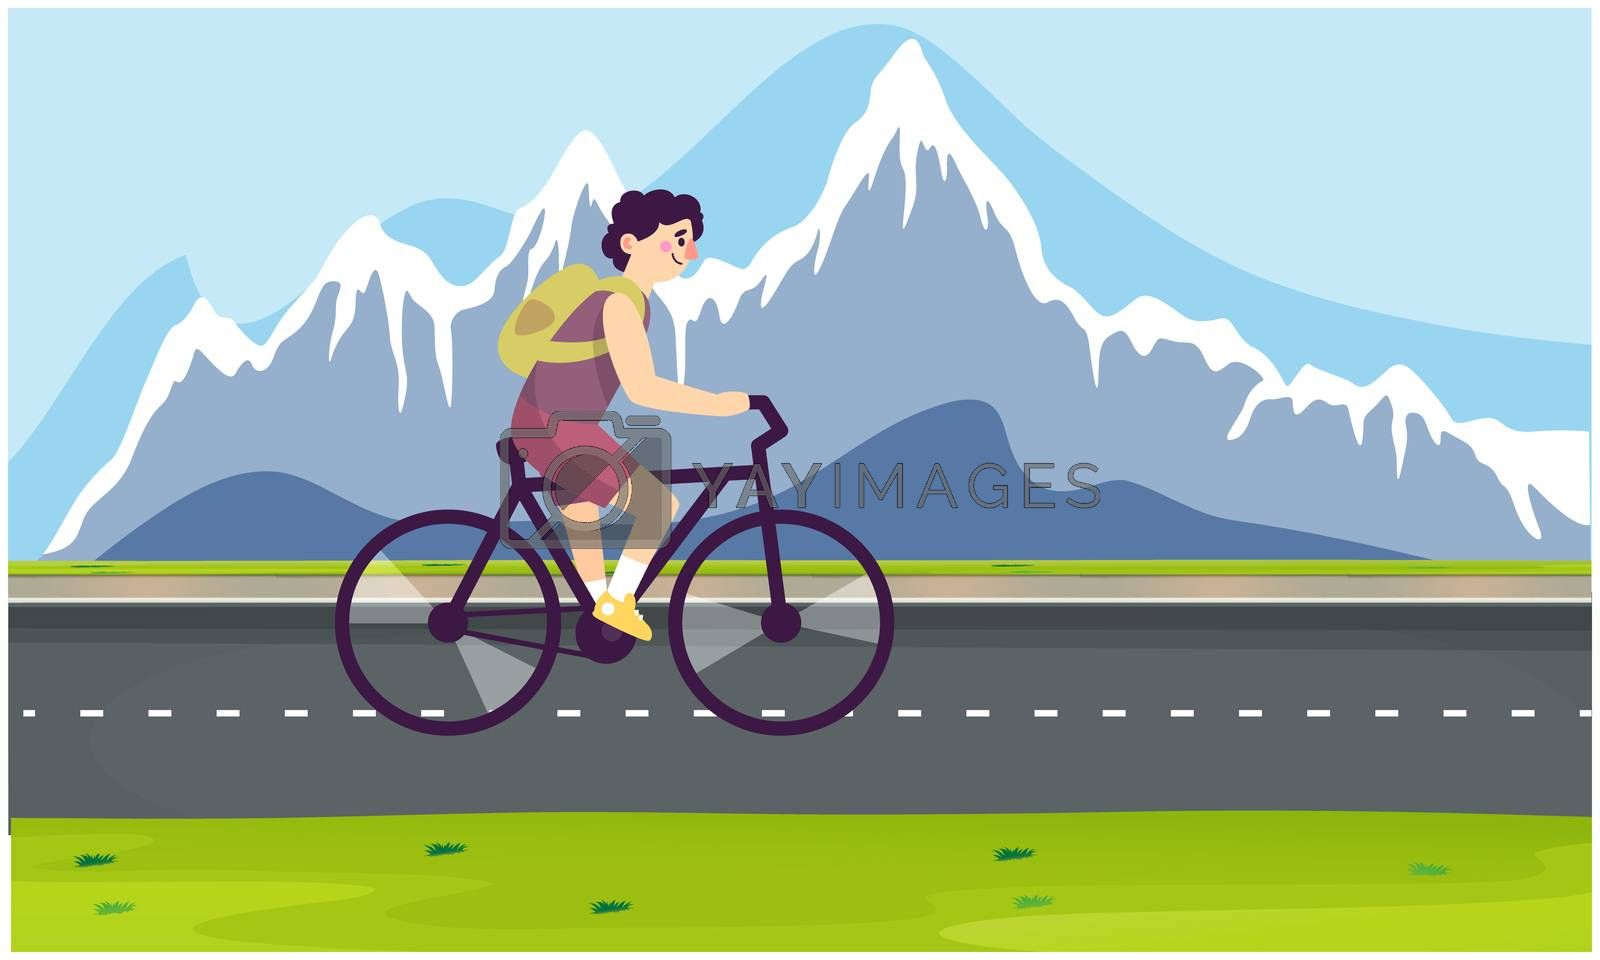 boy is riding bicycle on the road